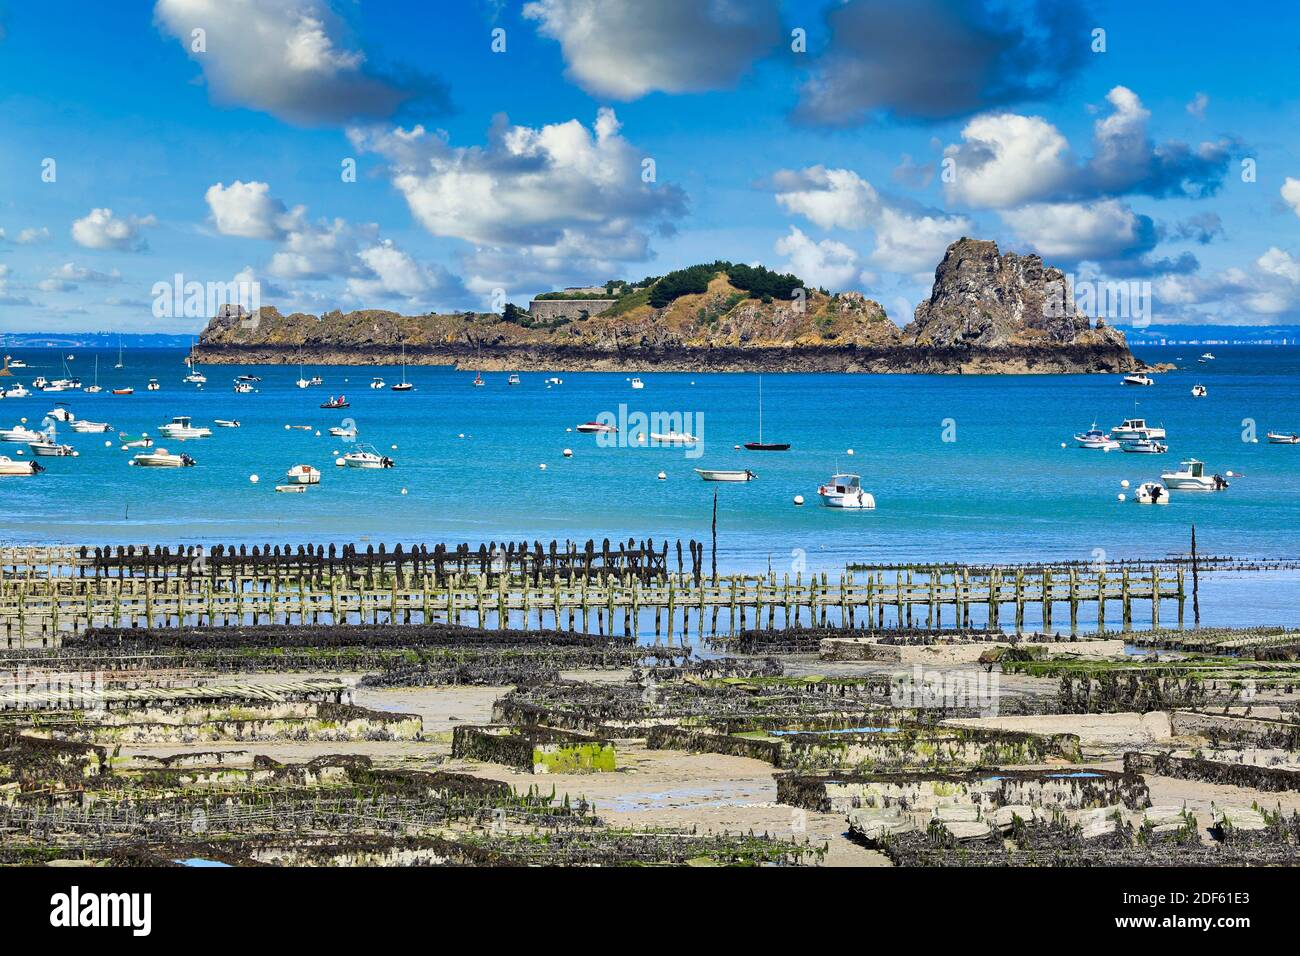 Oyster farming, Cancale, Brittany, Bretagne, France Stock Photo